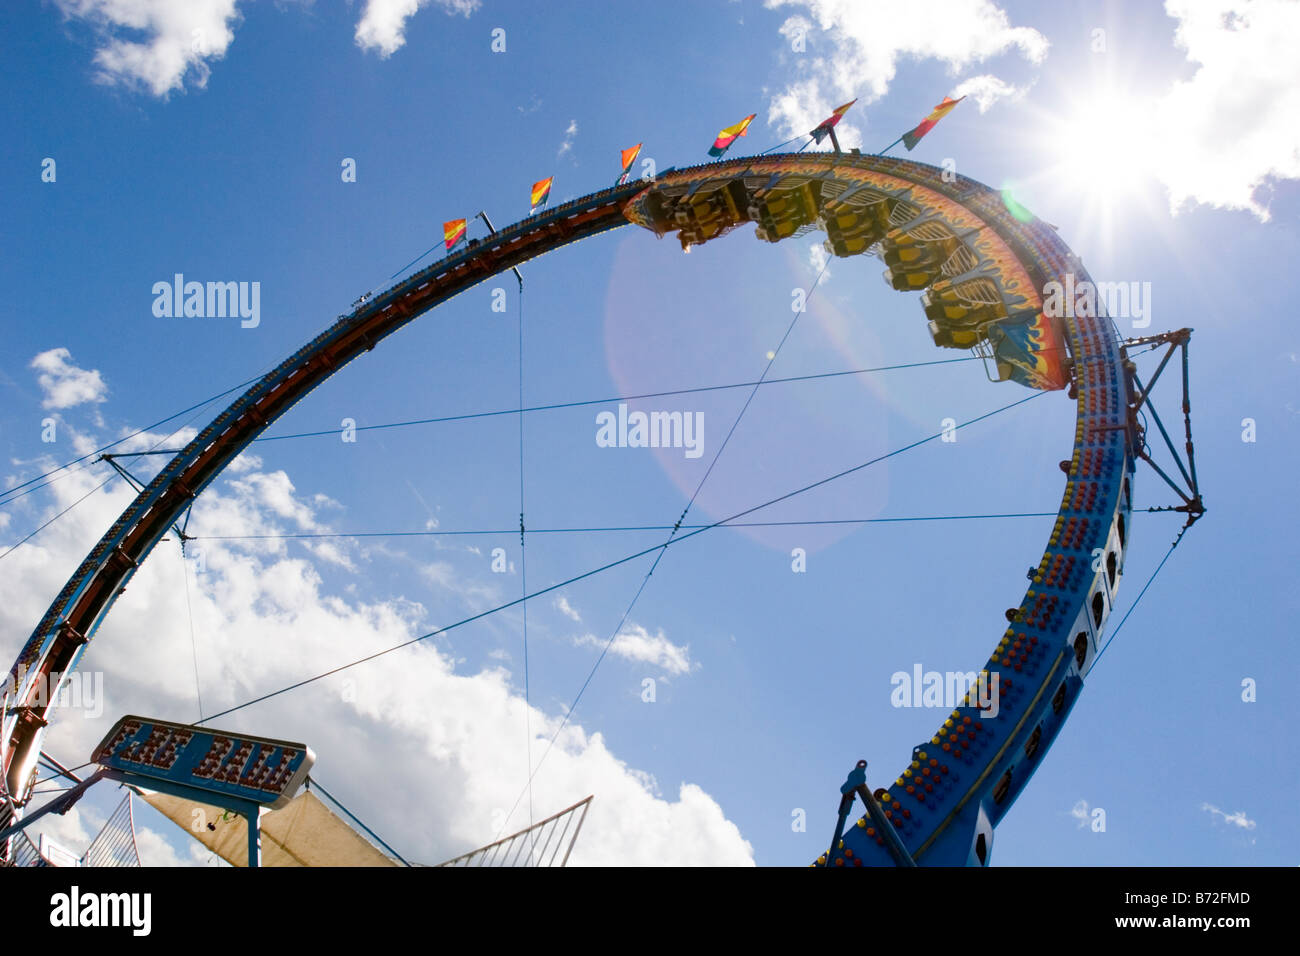 Upside down ride at amusement park in a county fair. - Stock Image